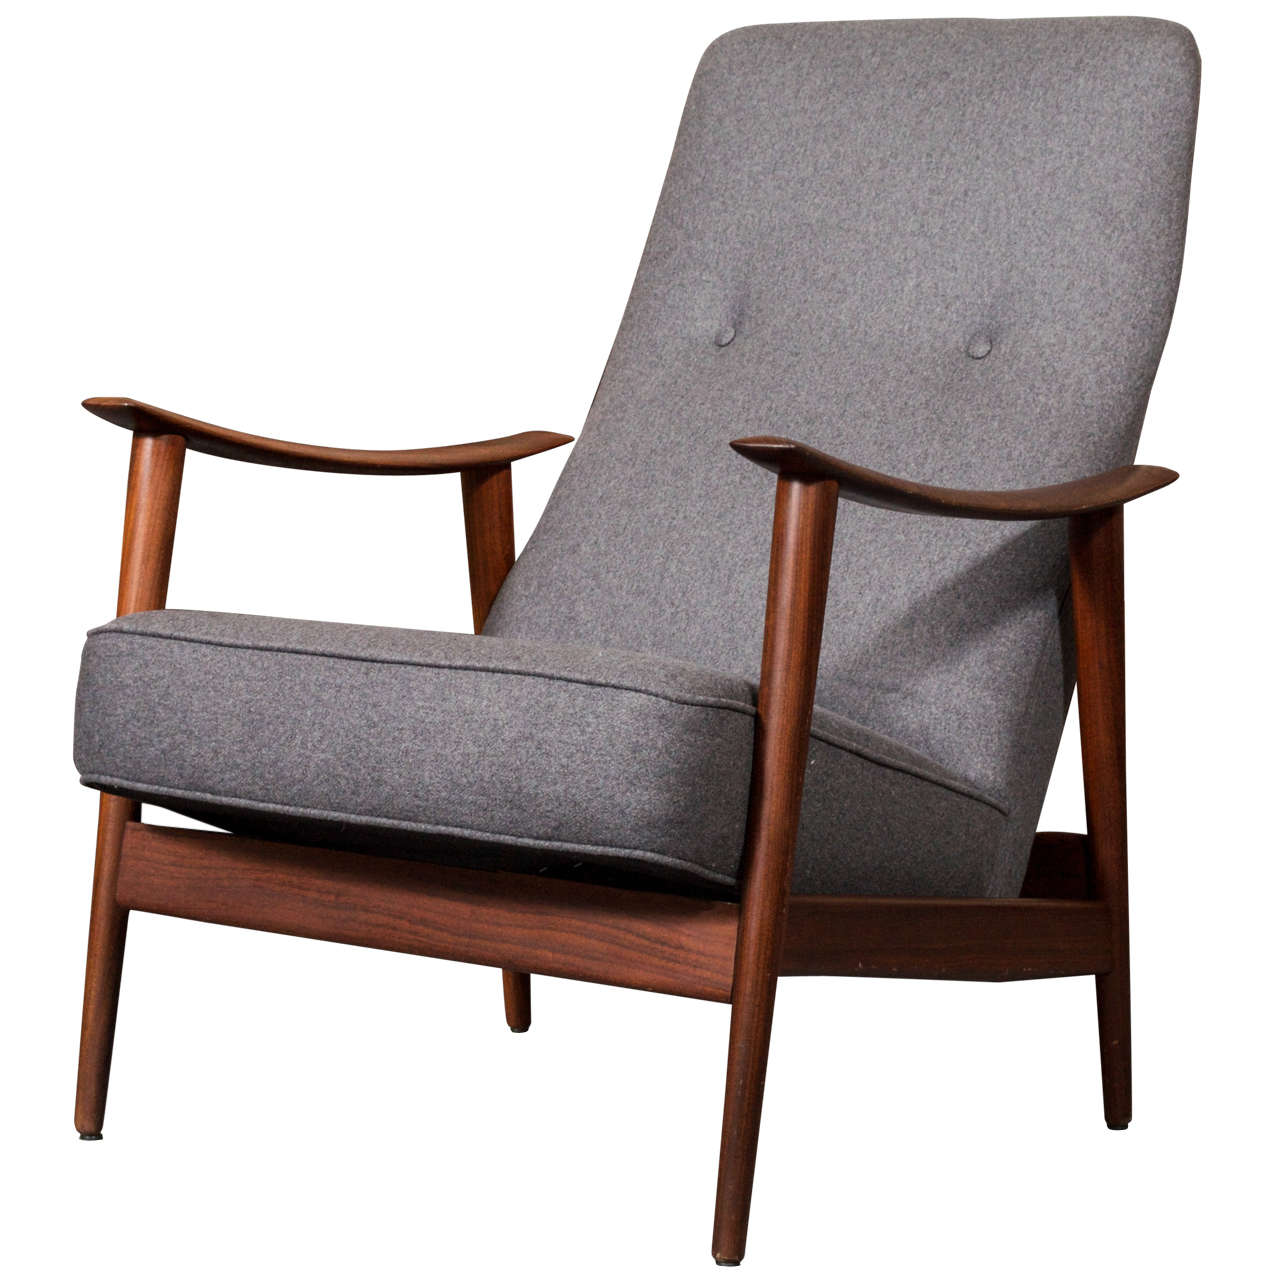 teak lounge chair red club and ottoman 1960 39s scandinavian rocking in gray wool